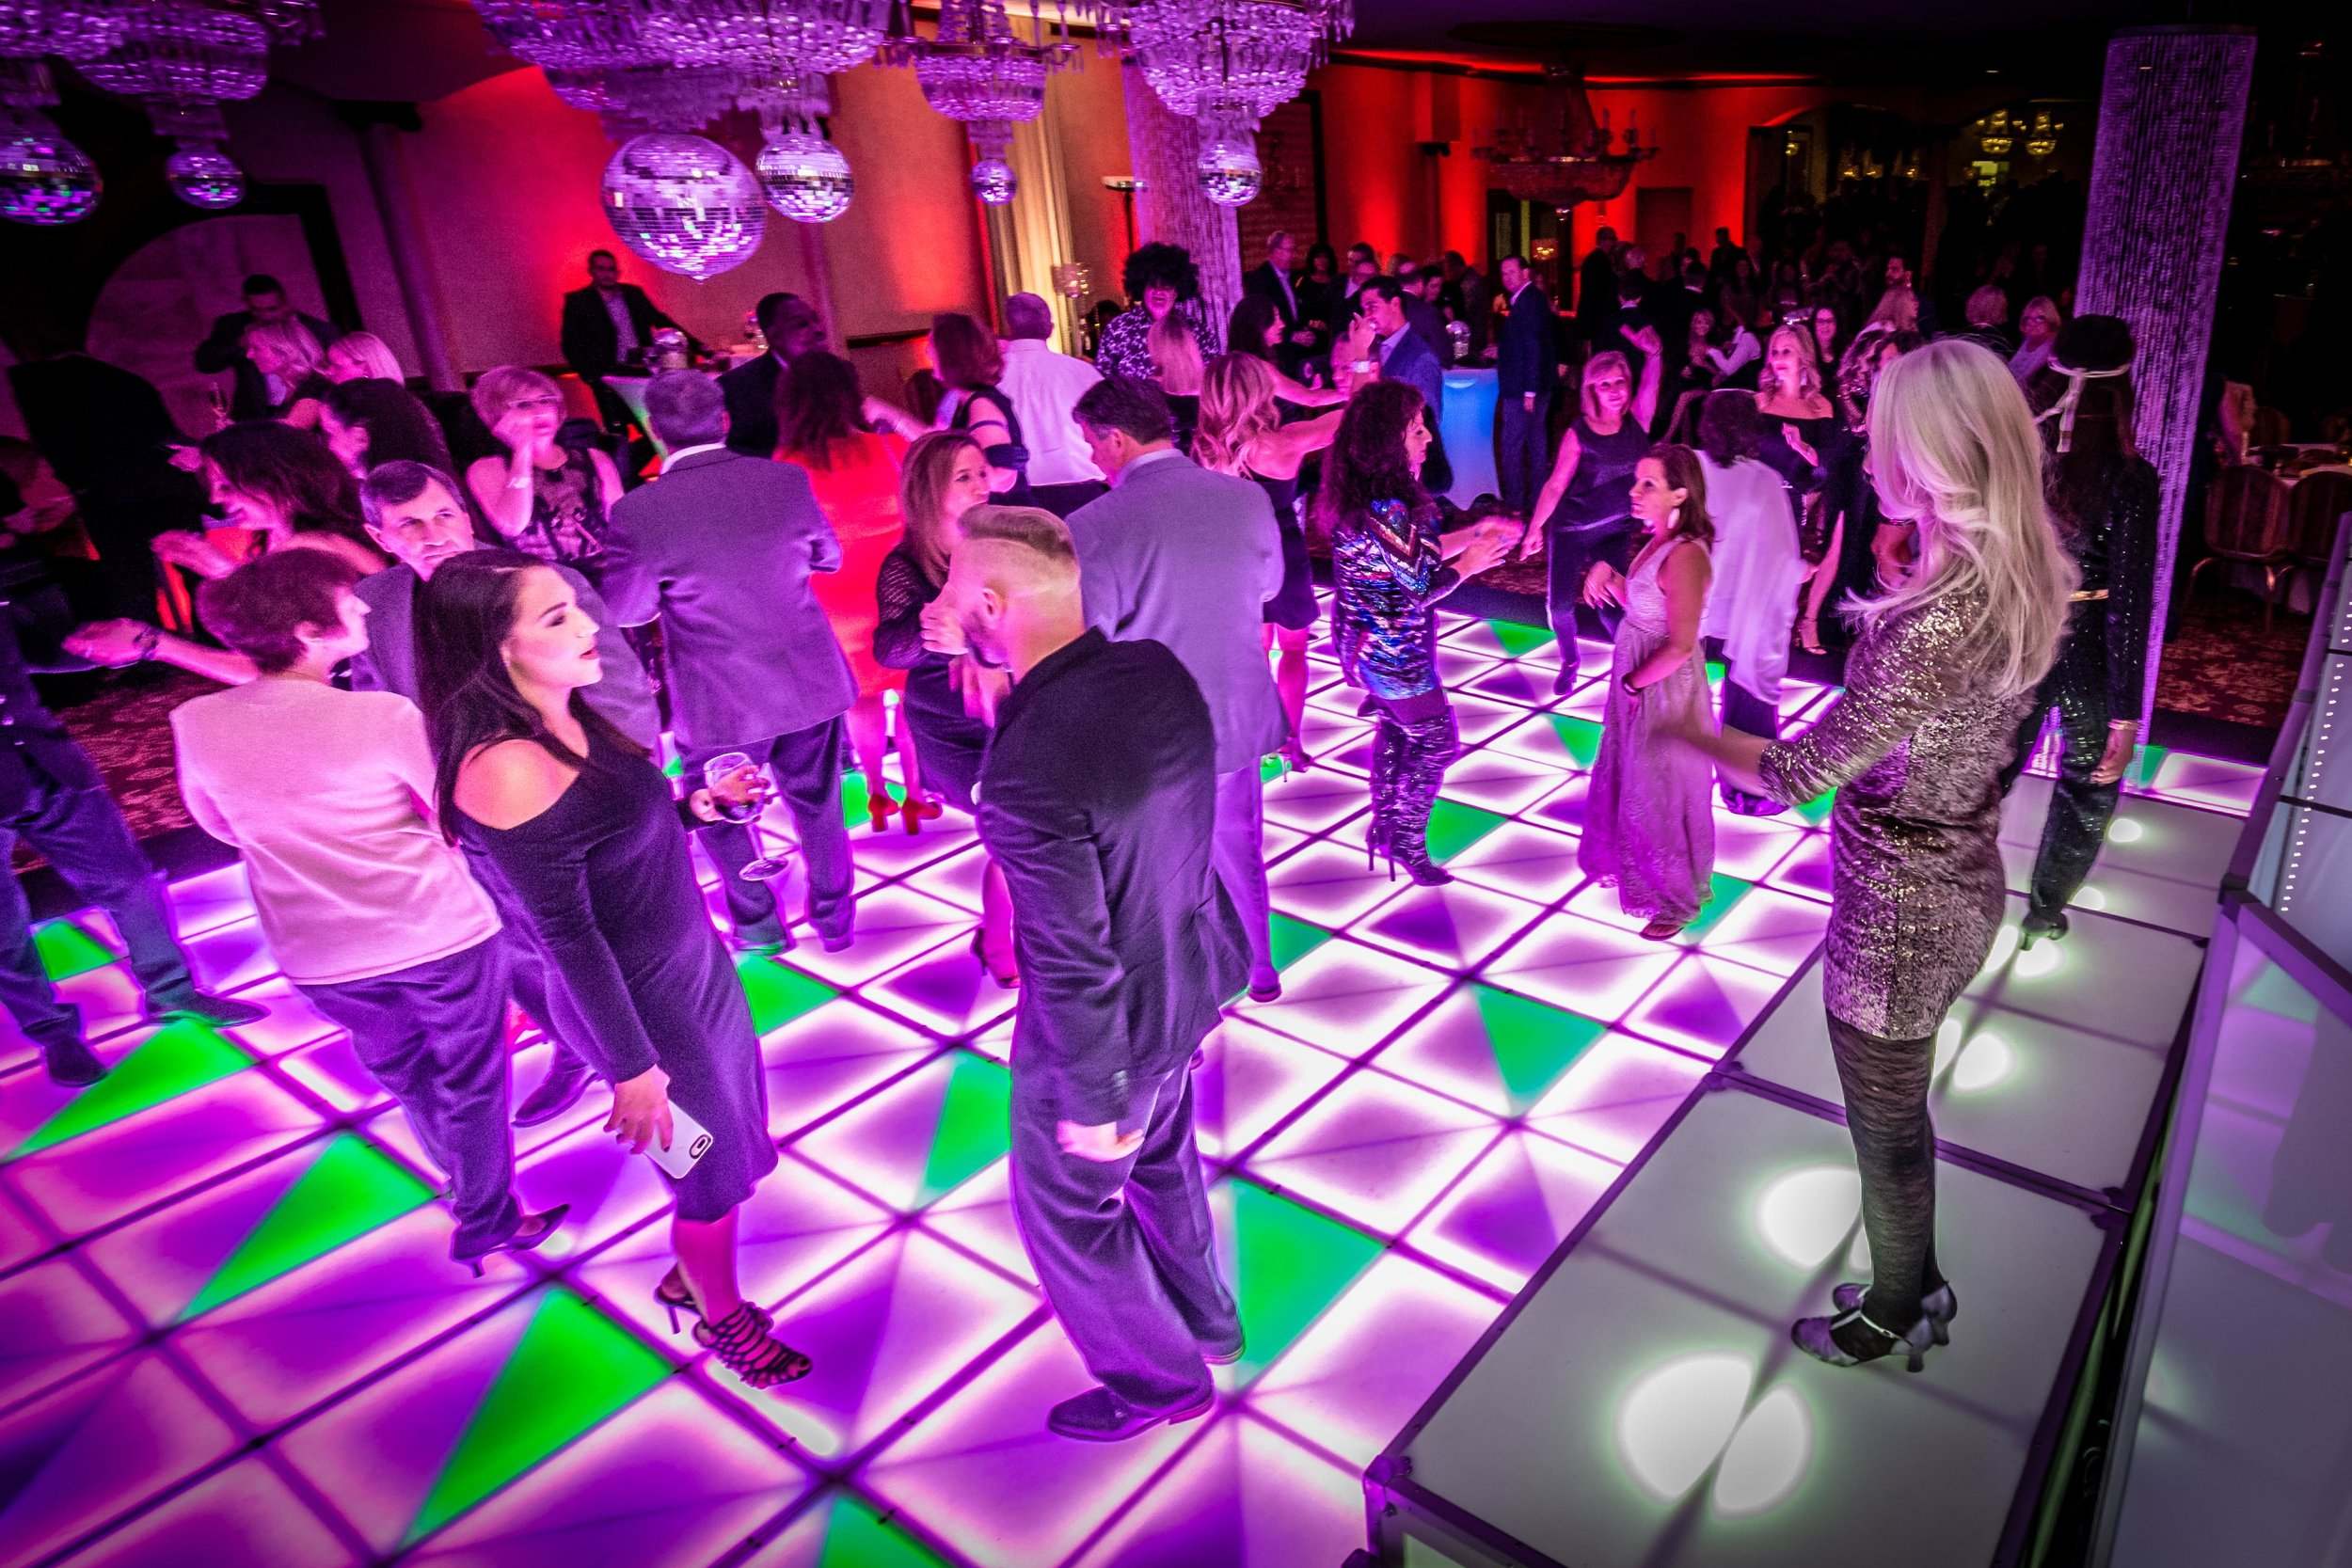 LED Dance Floor Purple Green.jpg